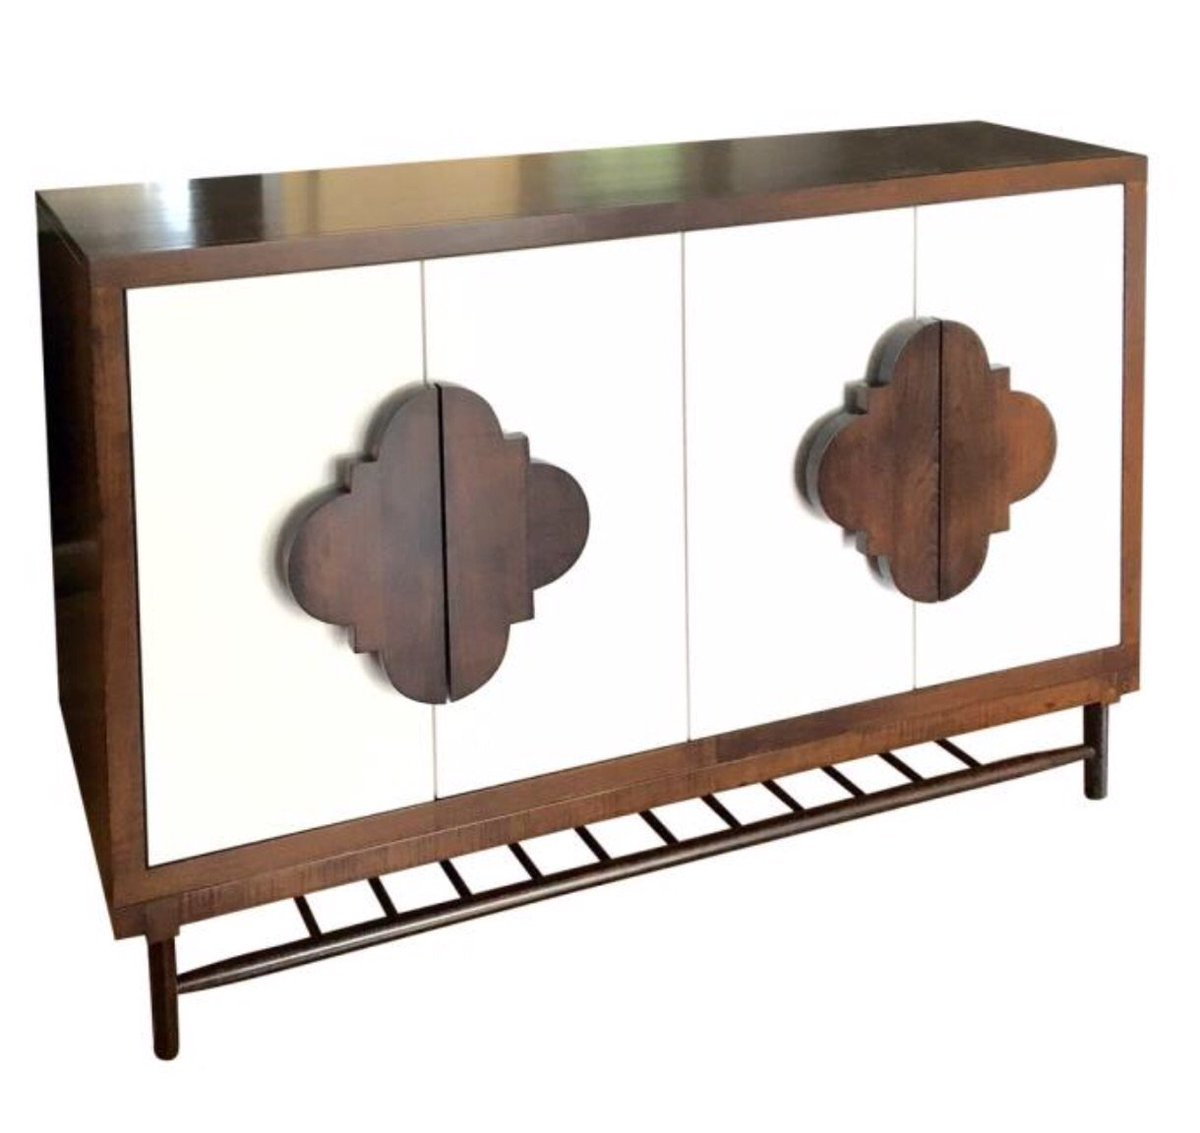 Pick 10 comes from @johnstrauss -- the Maple Hill Buffet in solid maple with paint lacquered doors #hpmkt https://t.co/olaIFaRA9I